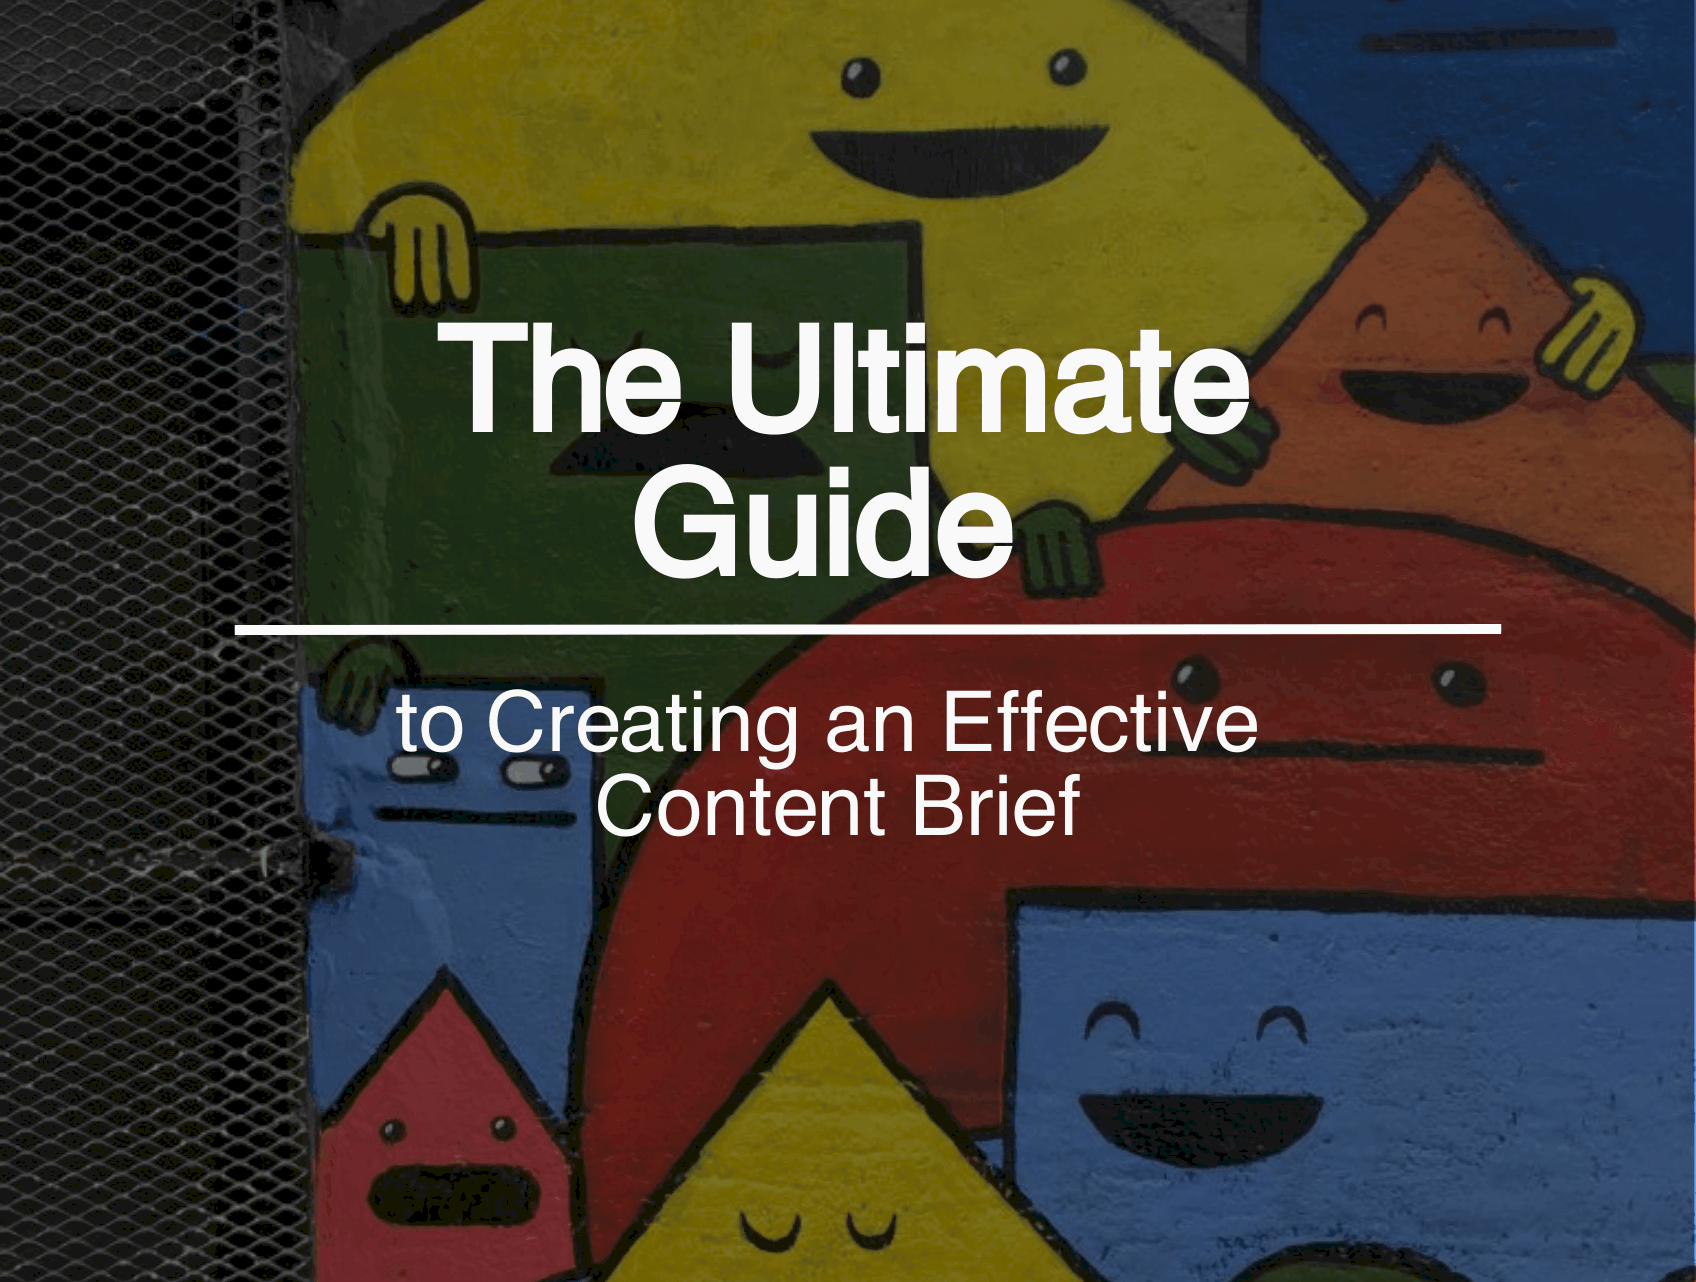 The Ultimate Guide to Creating an Effective Content Brief